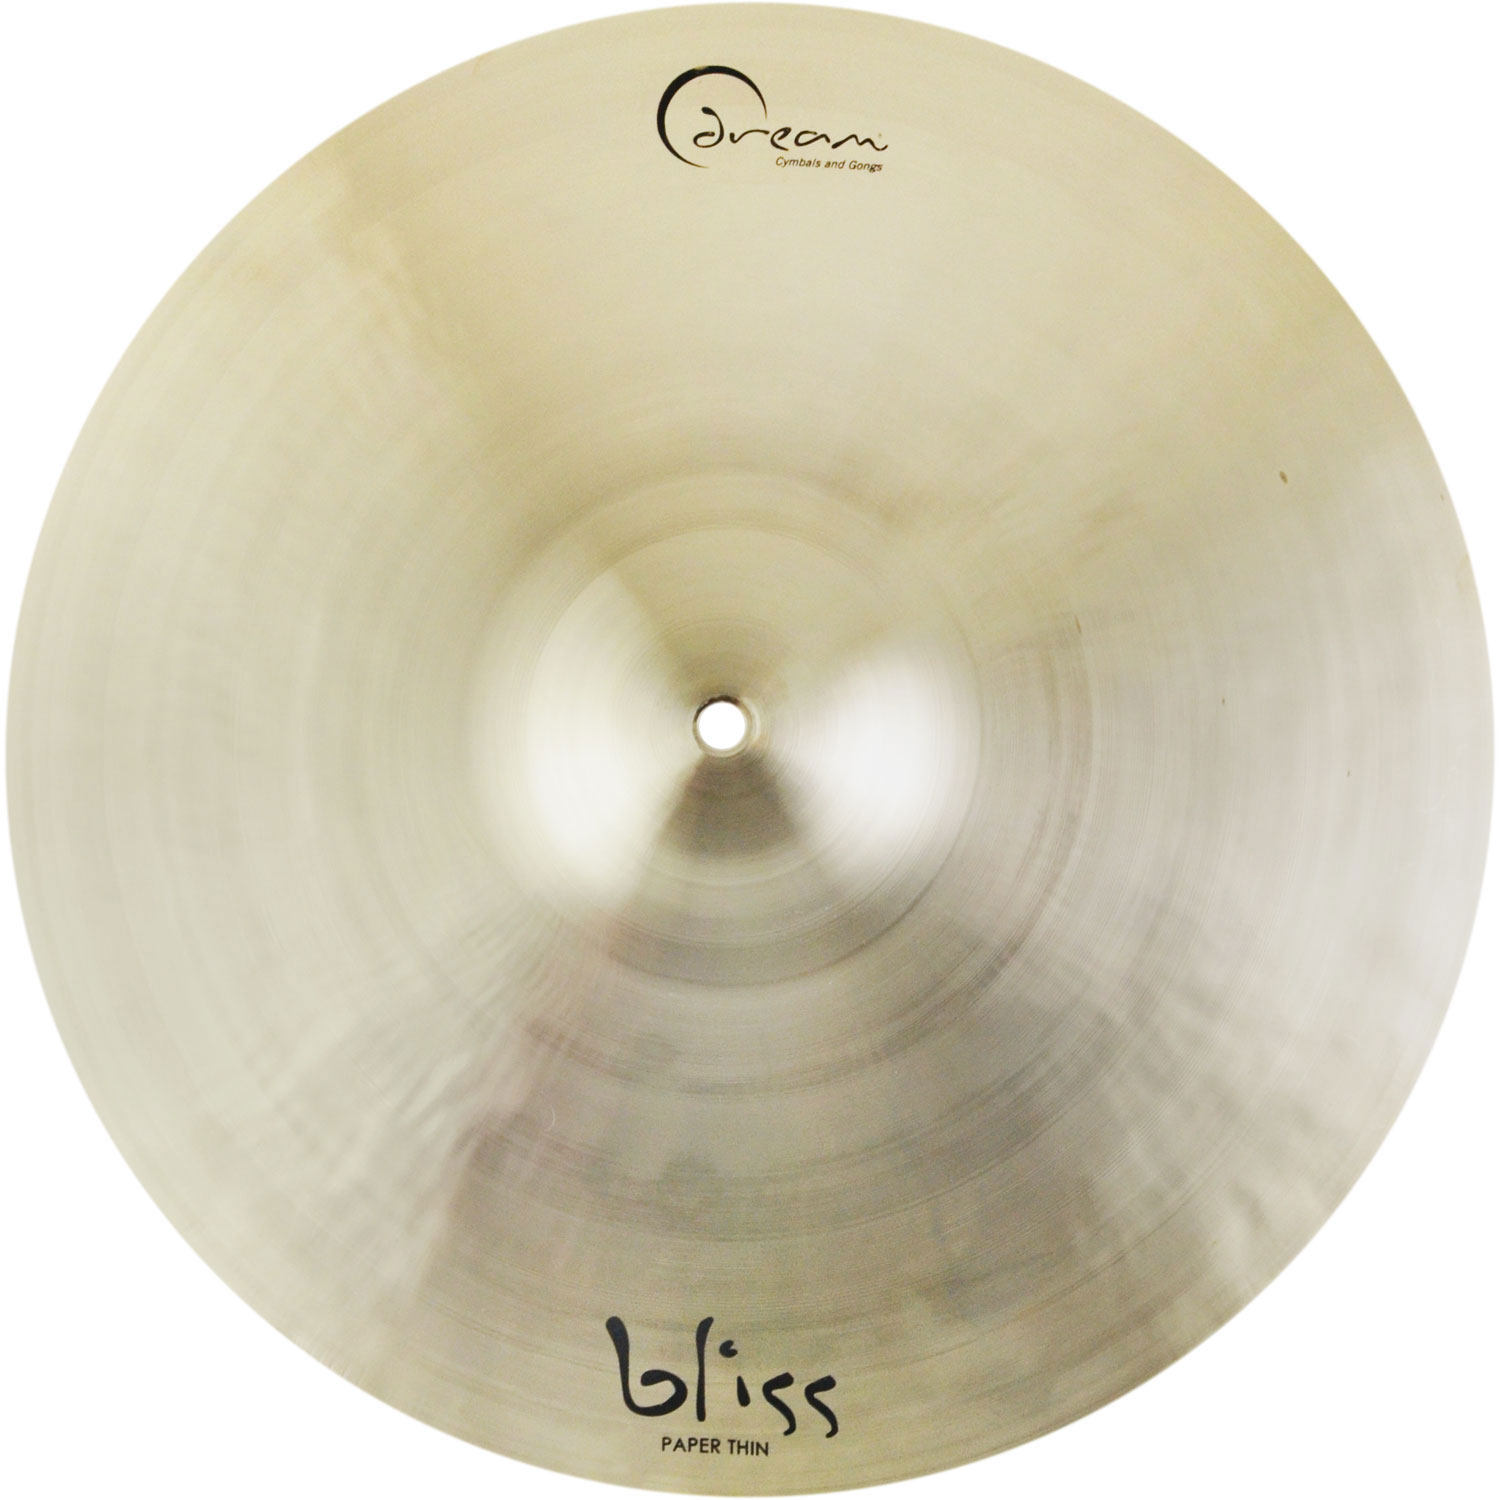 "Dream 15"" Bliss Paper Thin Crash Cymbal"